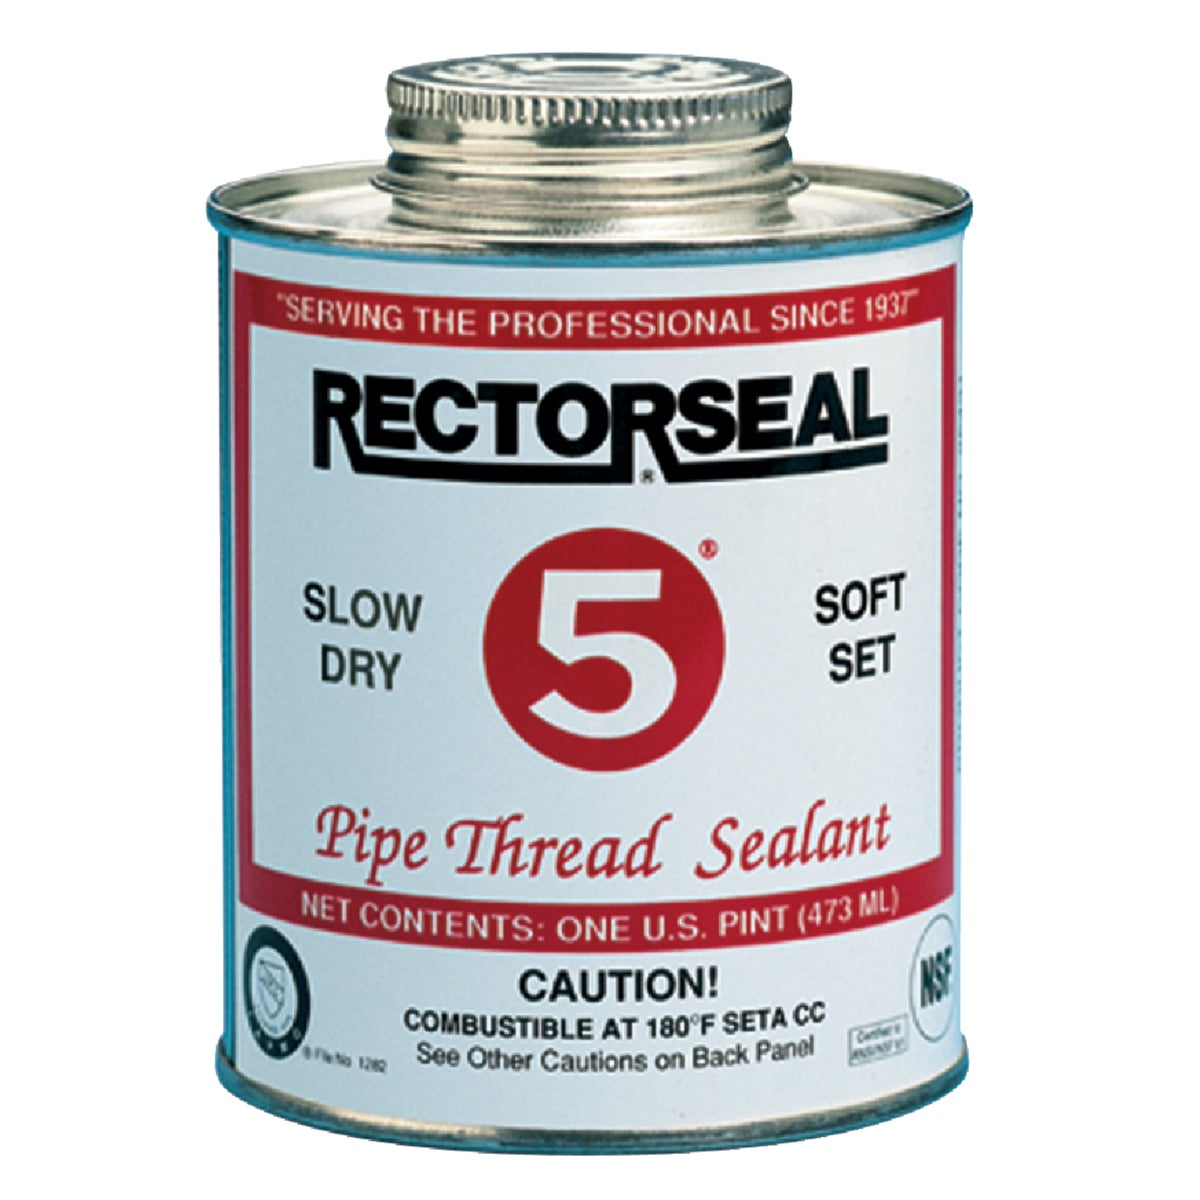 1/2PT PIPE THRD SEALANT - 25551 by Rectorseal Corp